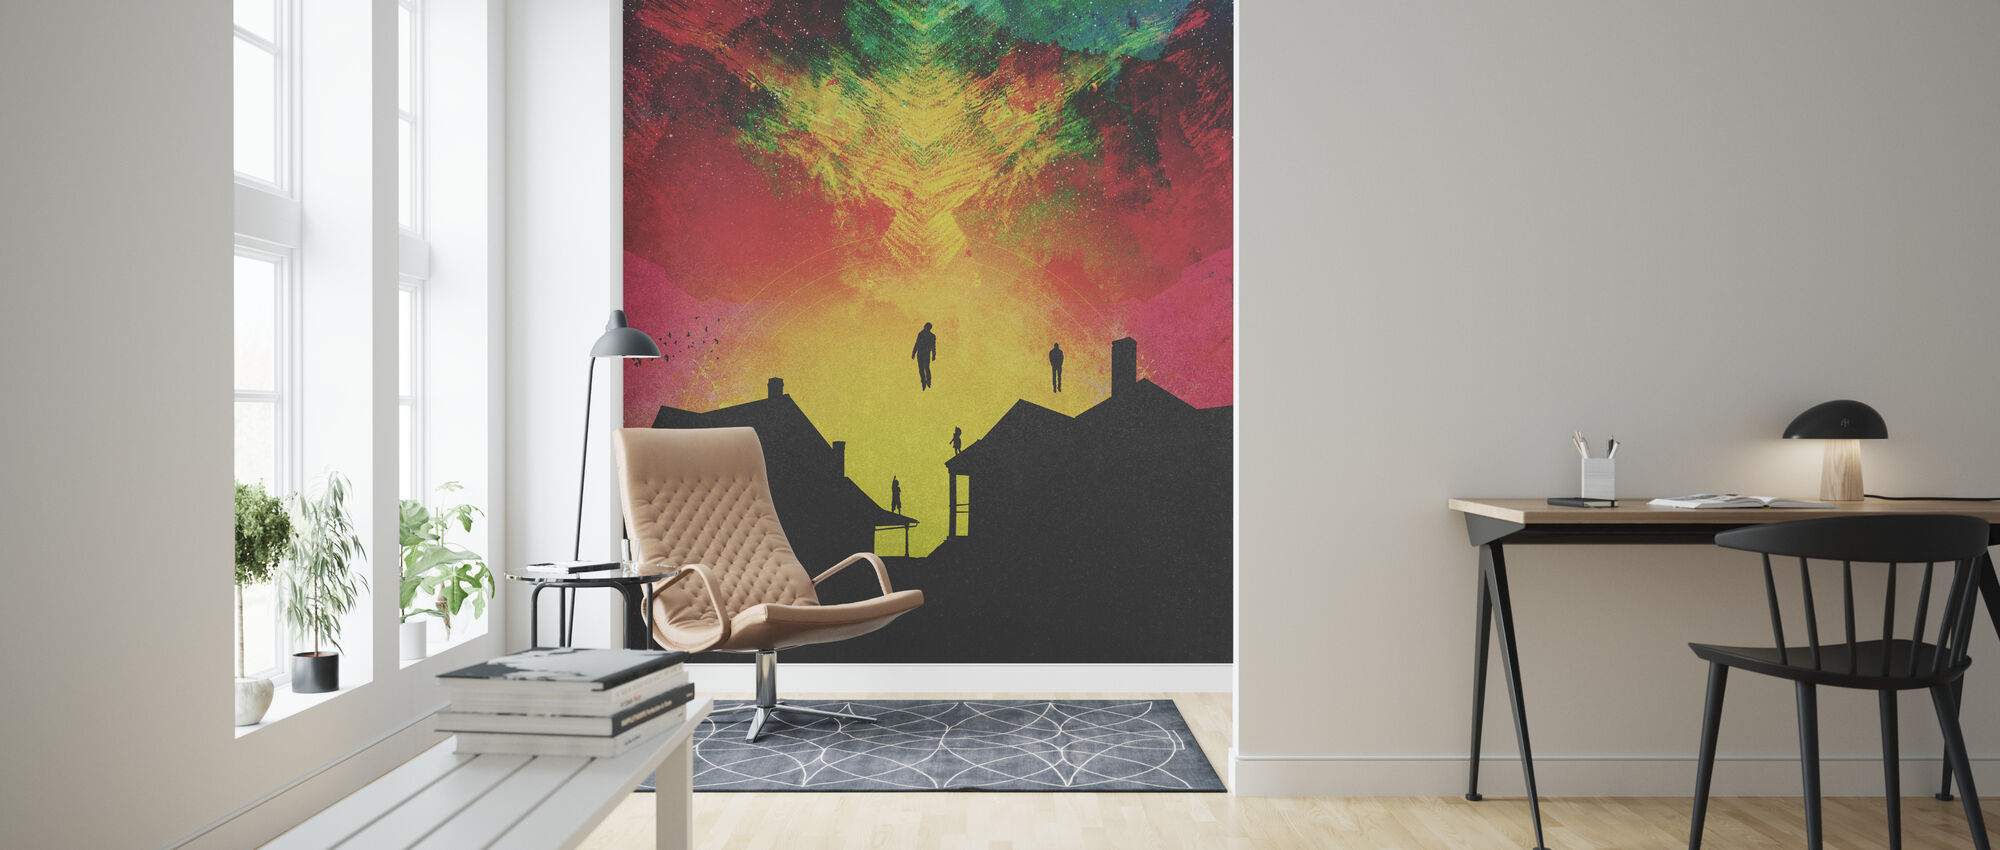 Abducted - Wallpaper - Living Room